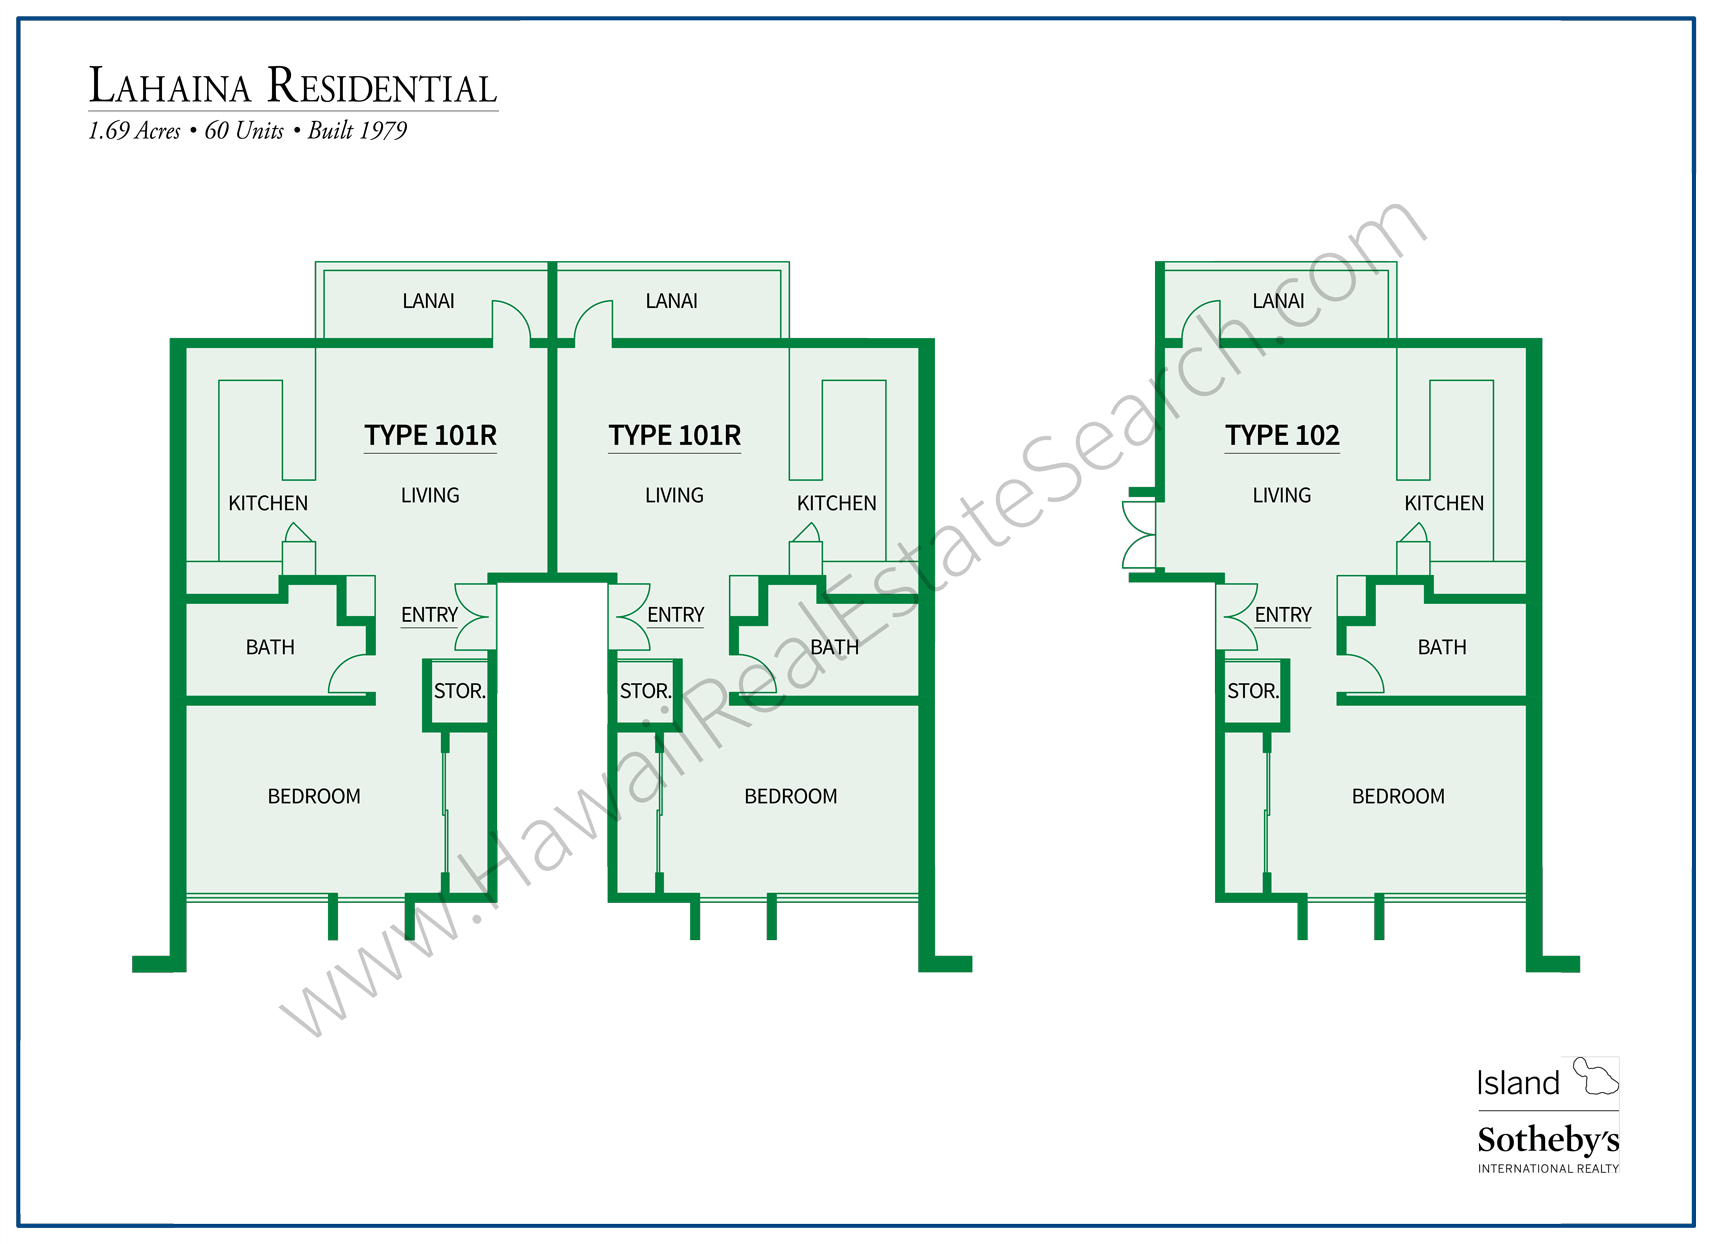 Lahaina Residential Floor Plans